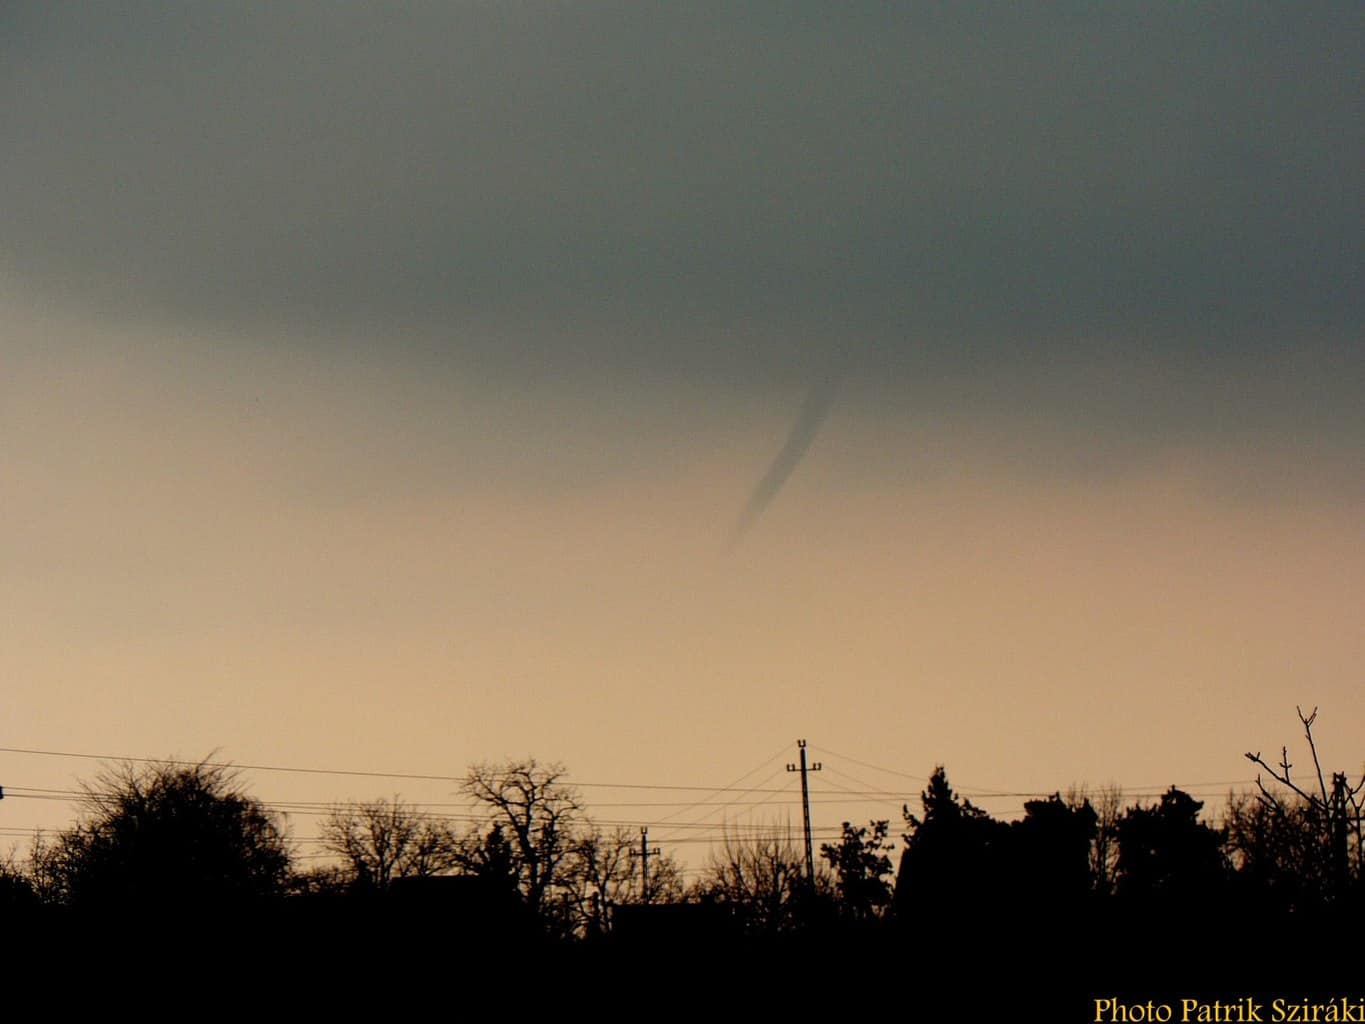 My first funnel cloud, March 13, 2015 in Marfű, Hungary